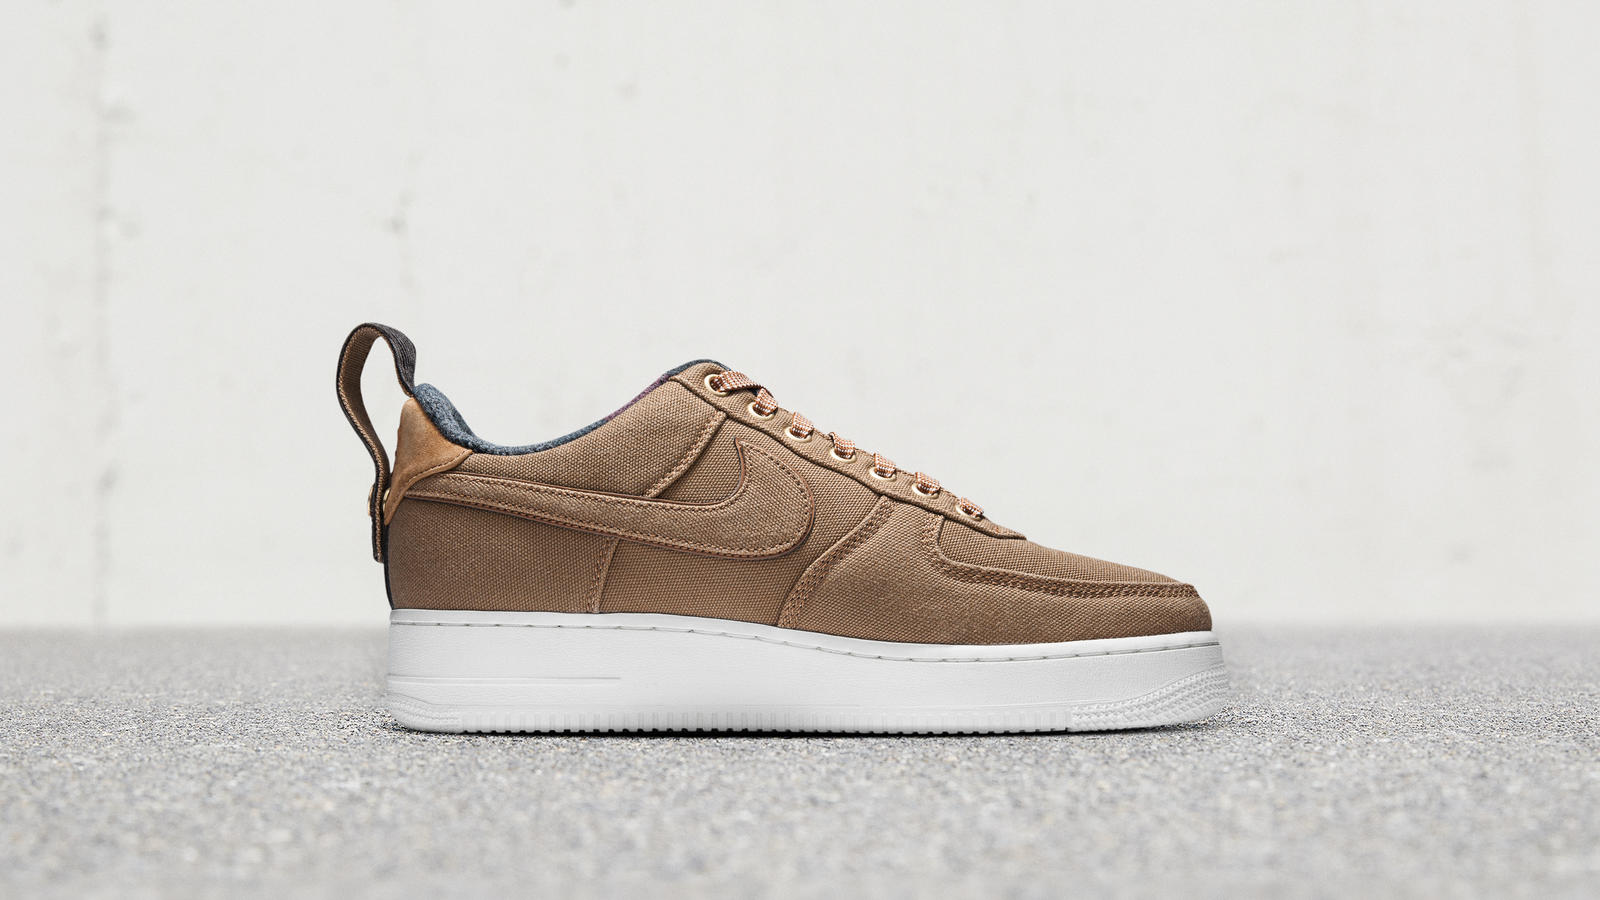 Highlighting the Nike x Carhartt WIP Air Force 1 sneakers